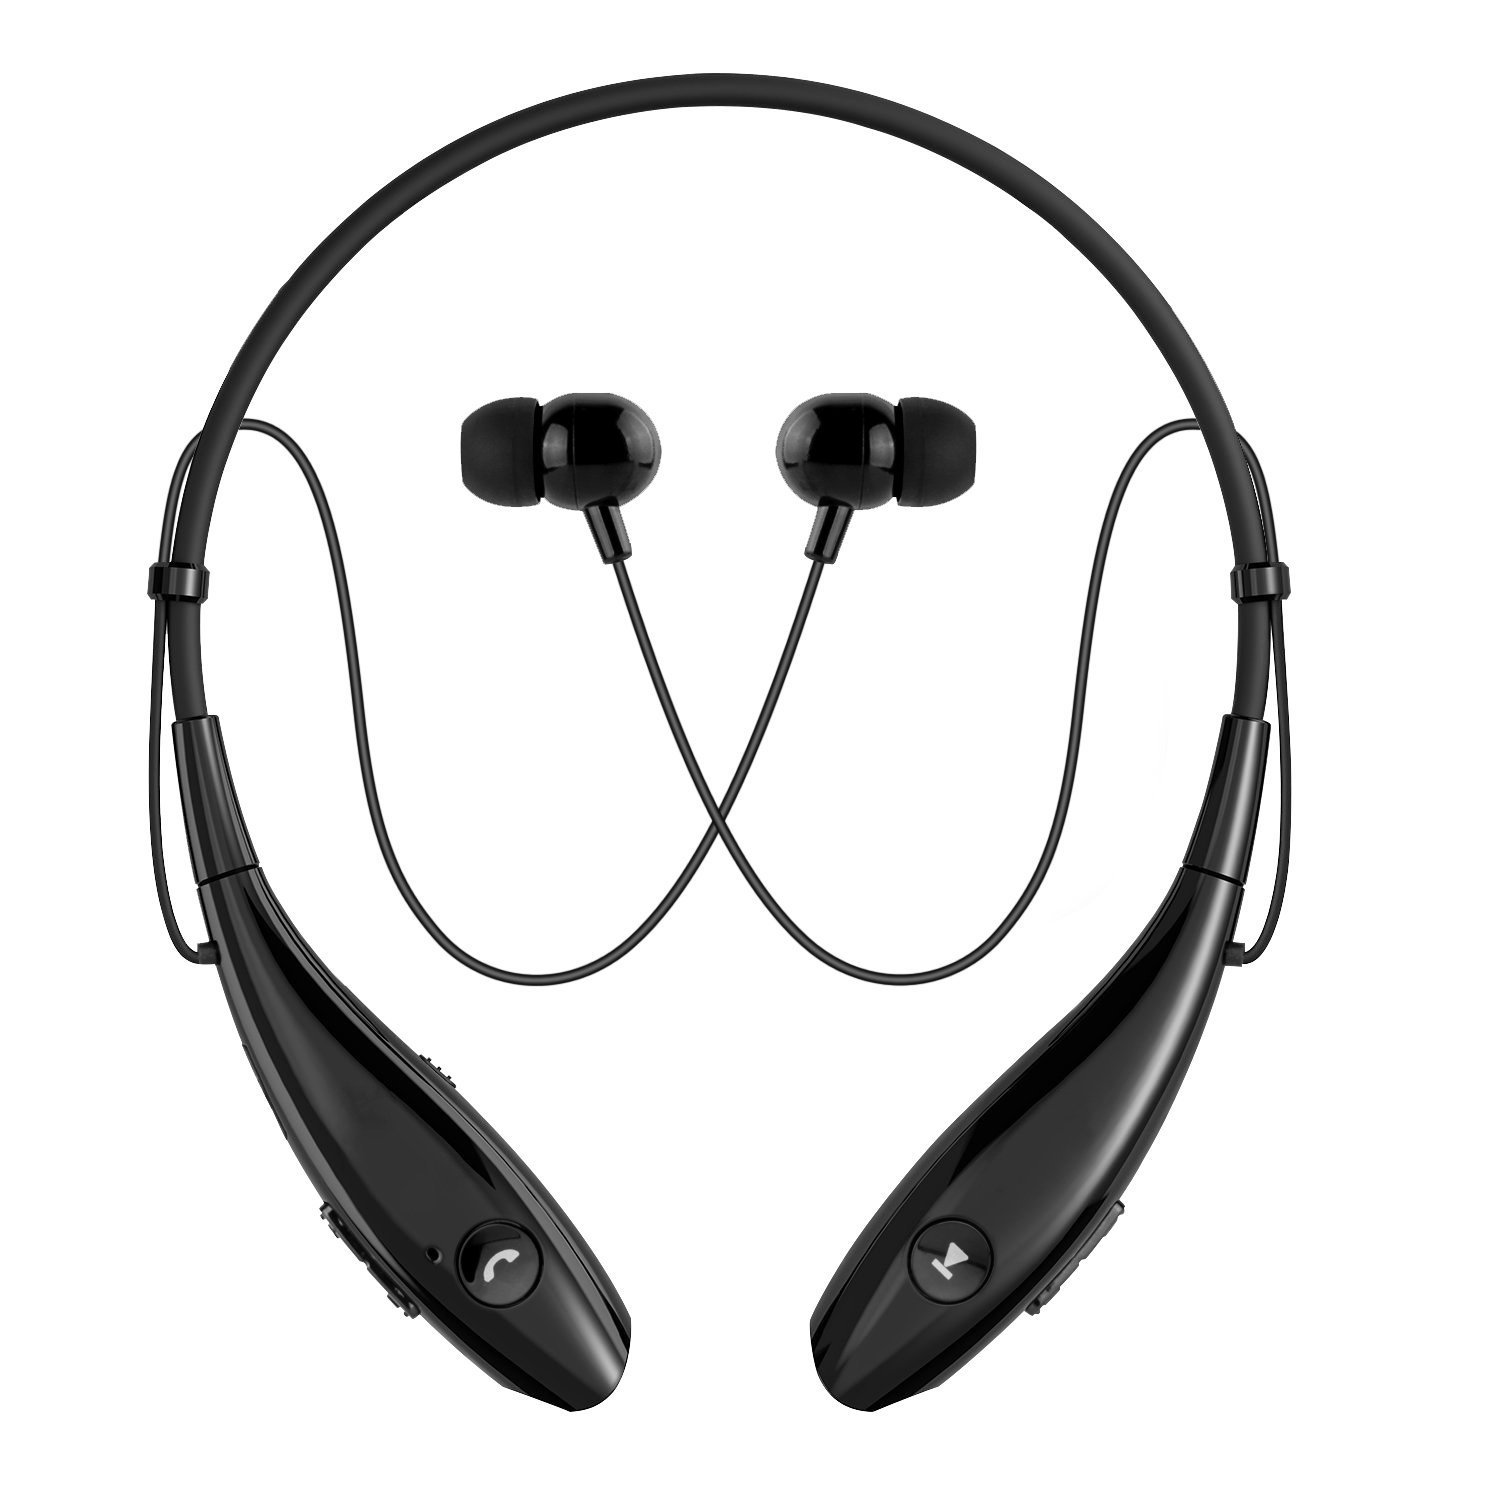 Bluetooth Headphones, SoundPEATS Wireless Headset Stereo Neckband Sport Earbuds with Mic (10 Hours Play Time, Bluetooth 4.1, Sweatproof) -Black